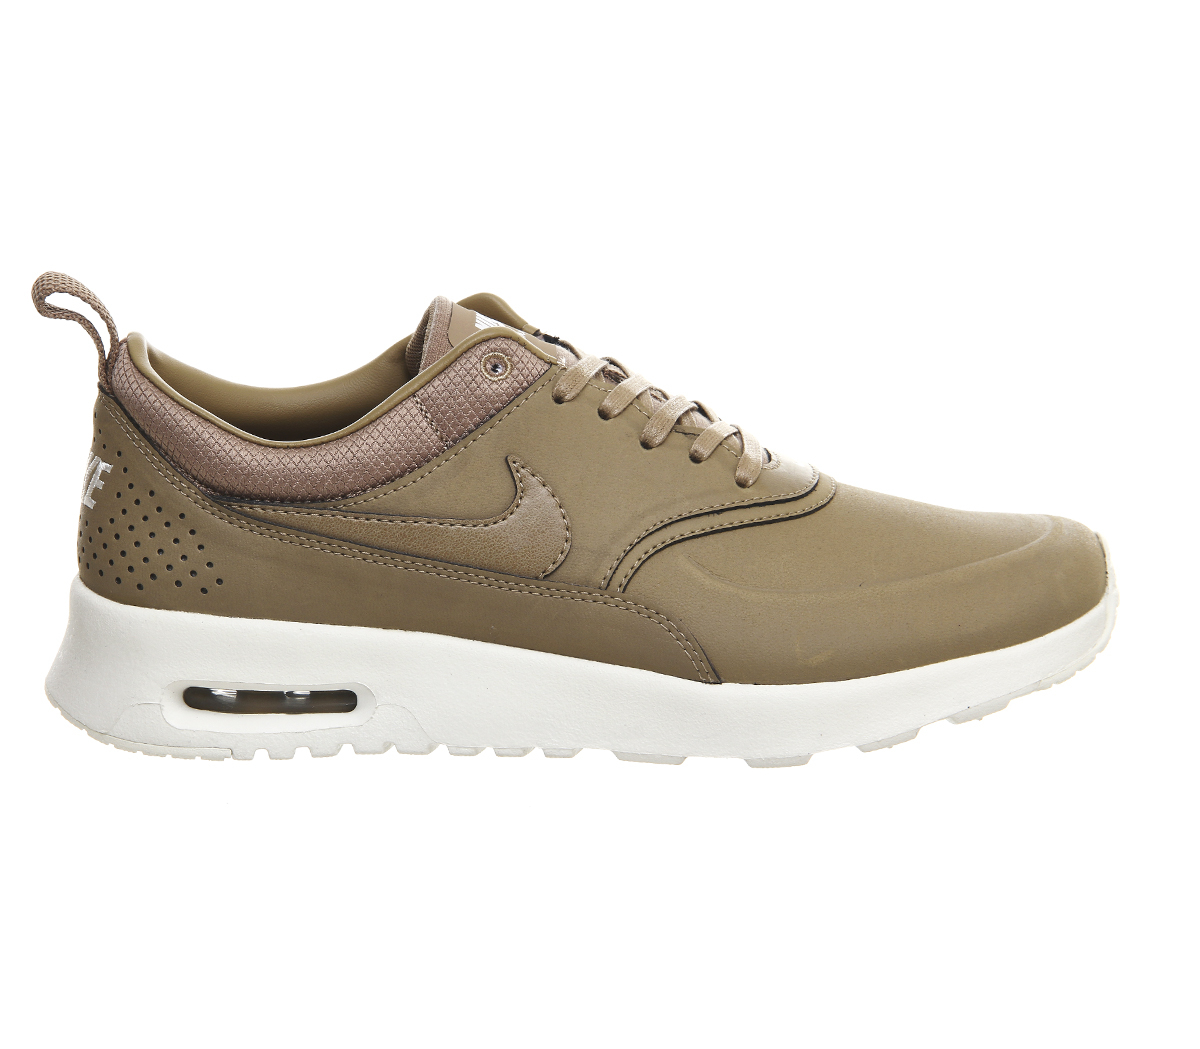 Nike Air Max Thea In Natural Lyst